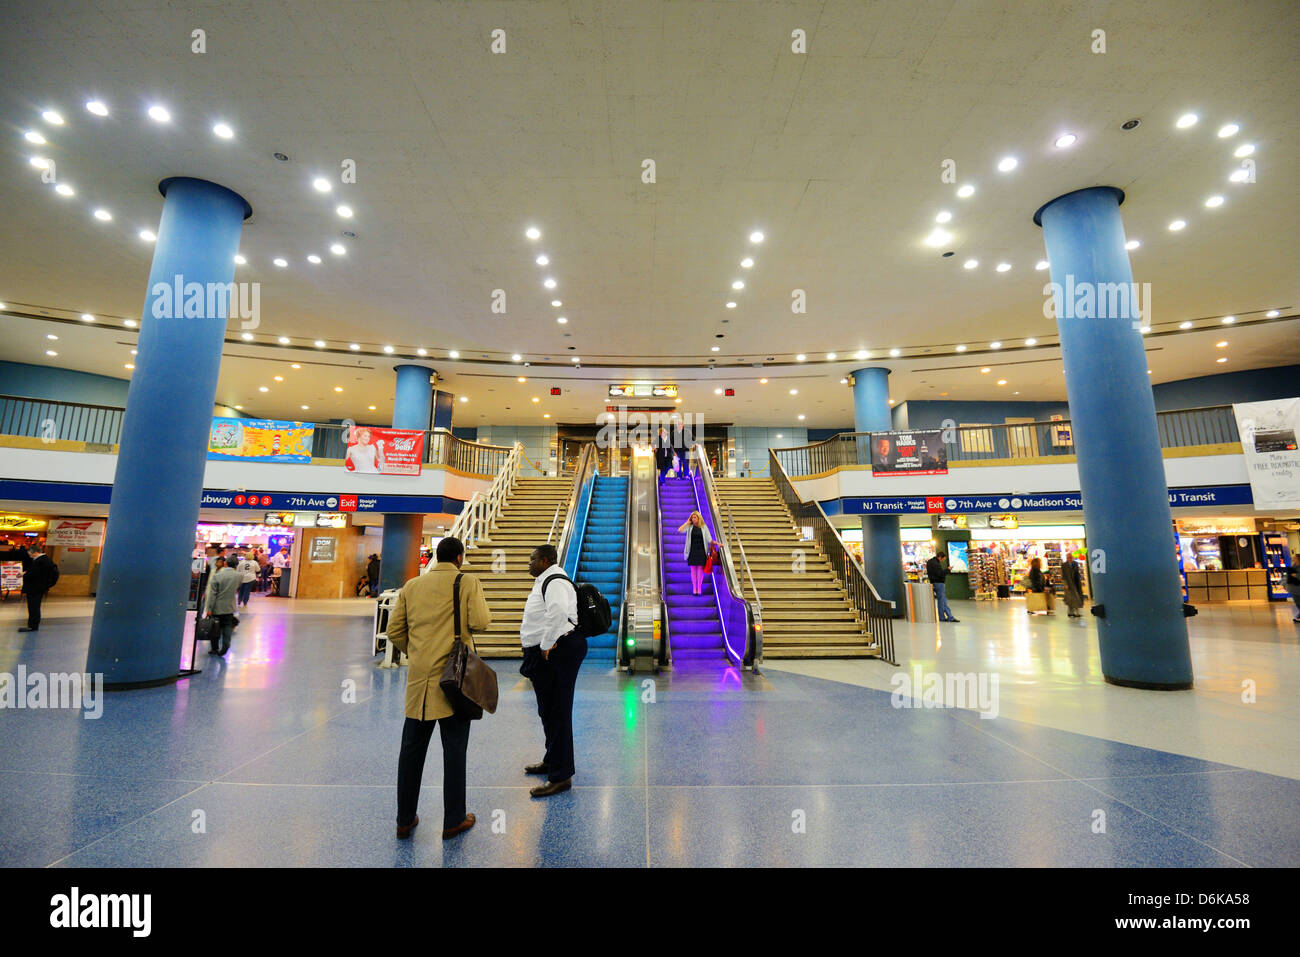 Penn Station Nyc Map Inside.Interior Of Penn Station In New York City Stock Photo 55744116 Alamy